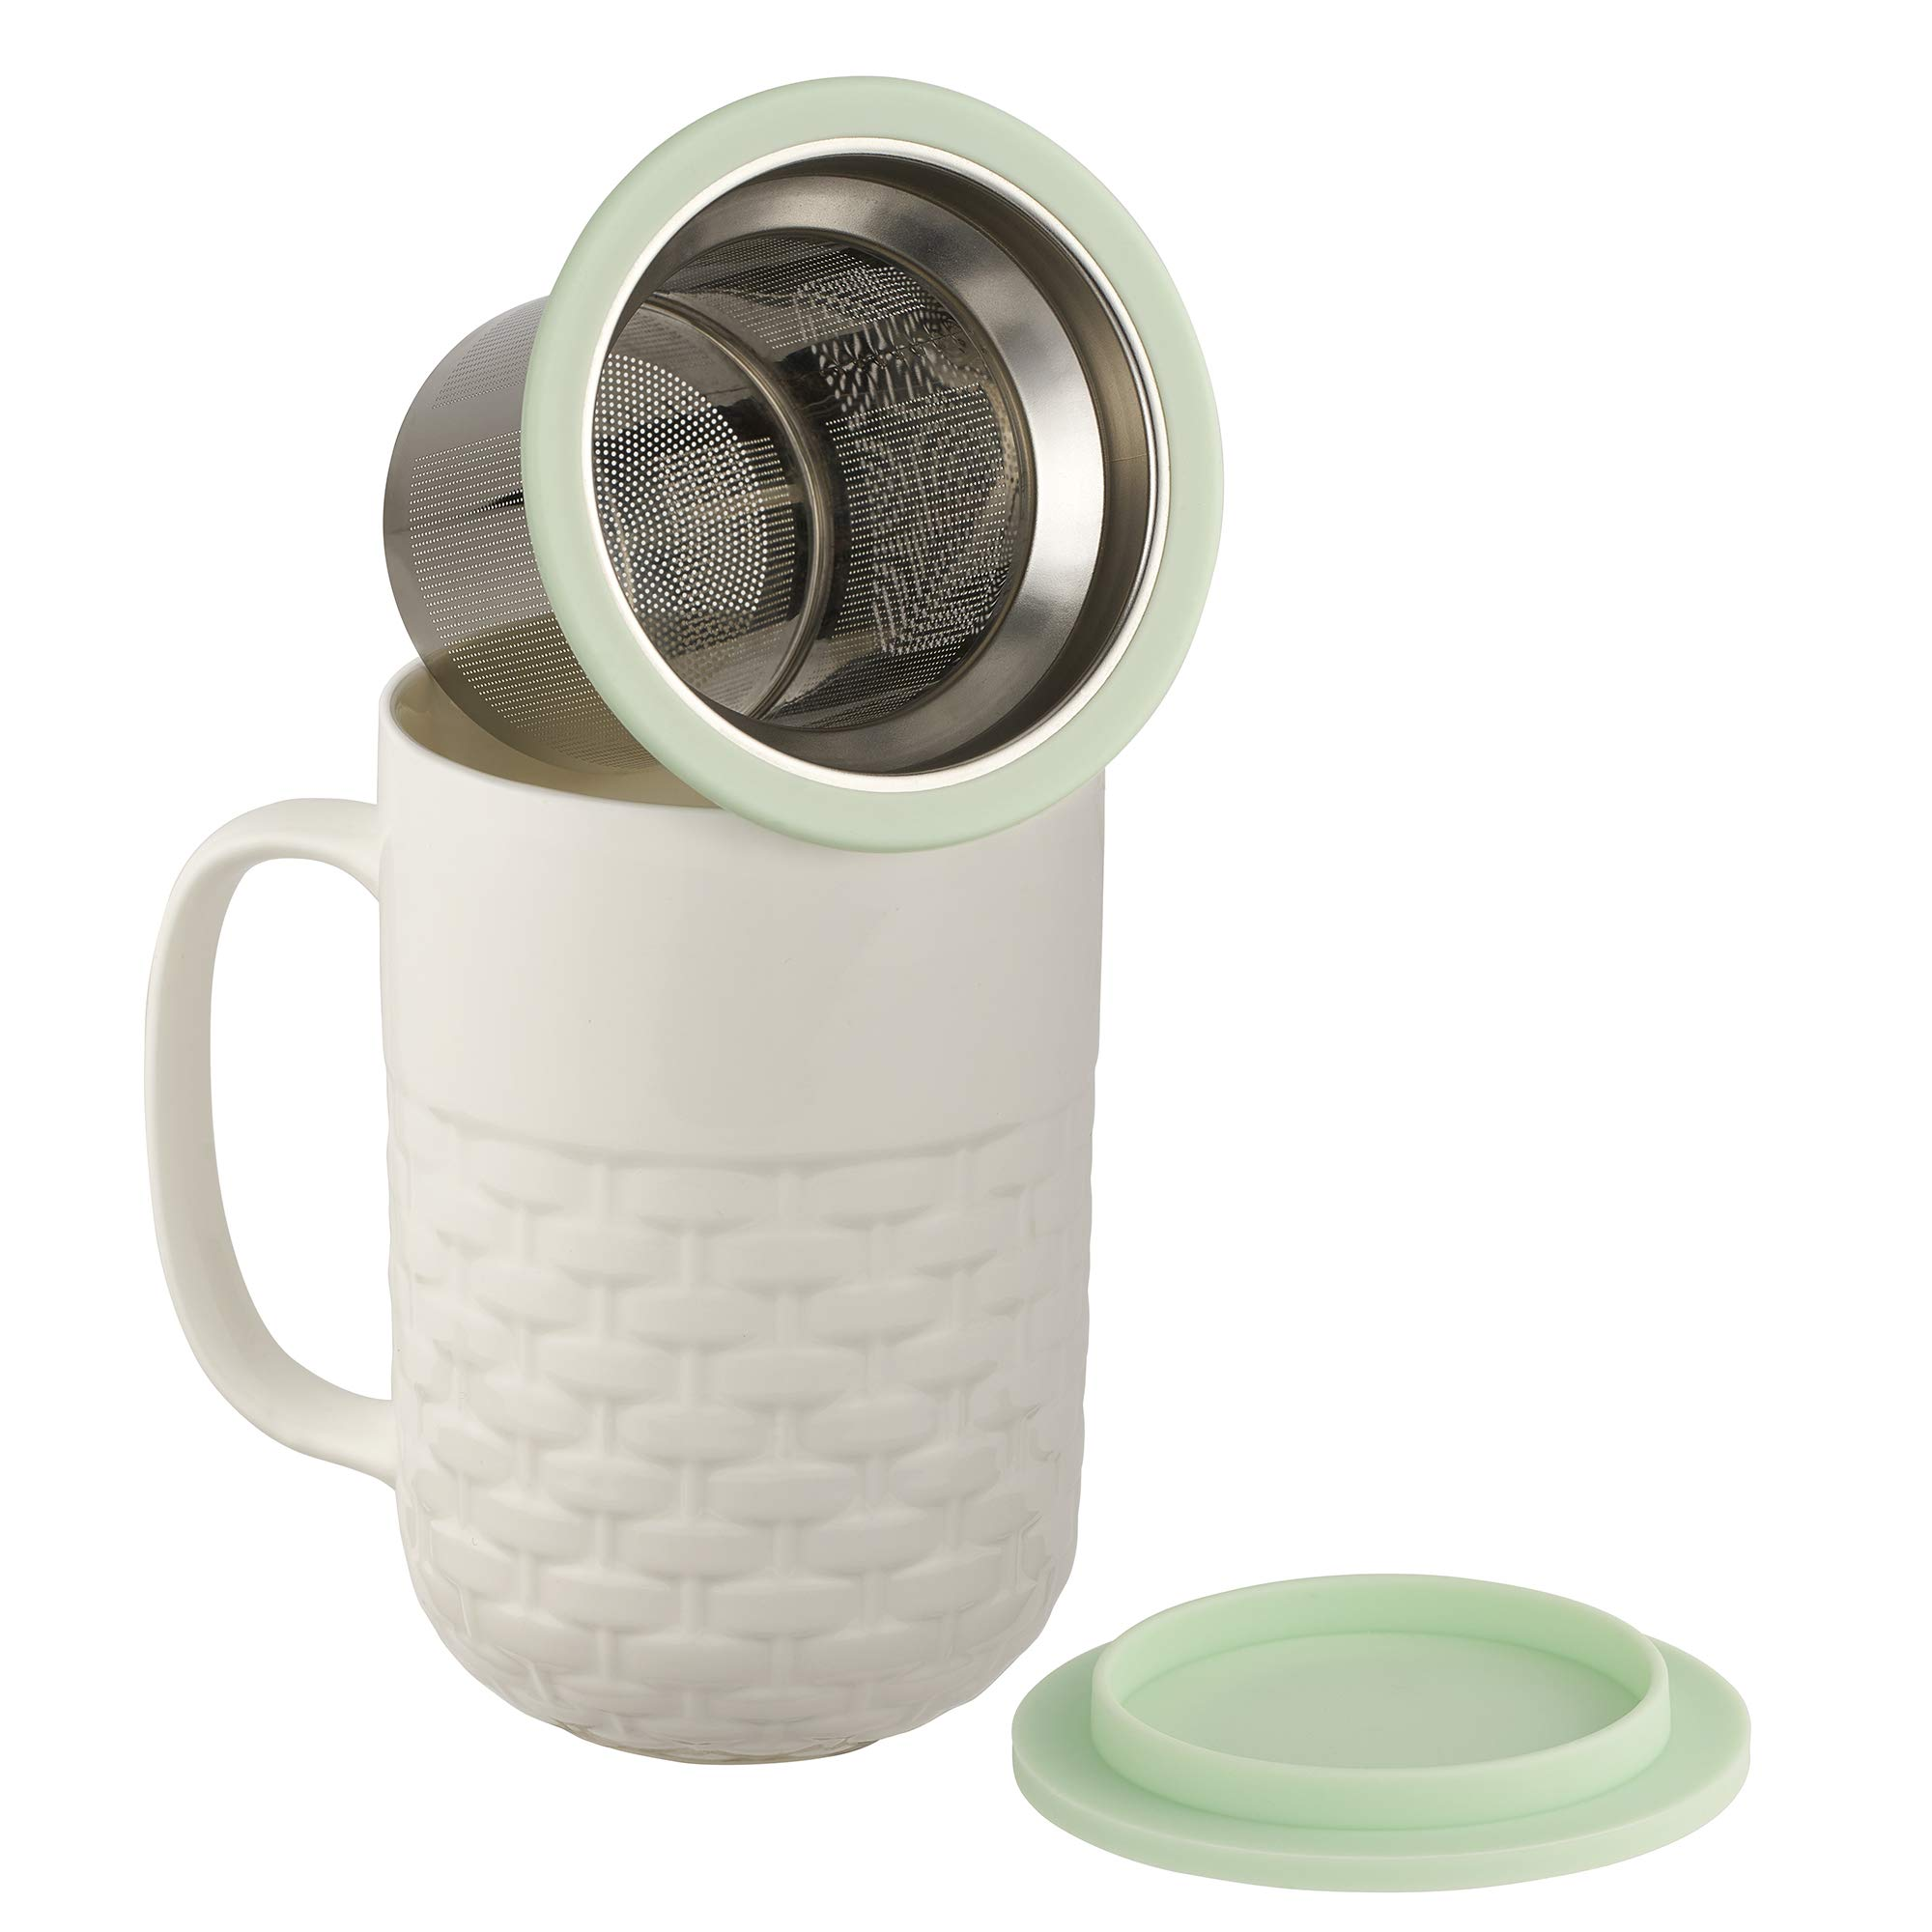 casaWare 15-Ounce Weave Textured New Bone China White Tea Infuser Mug with Lid/Coaster (Green Lid)